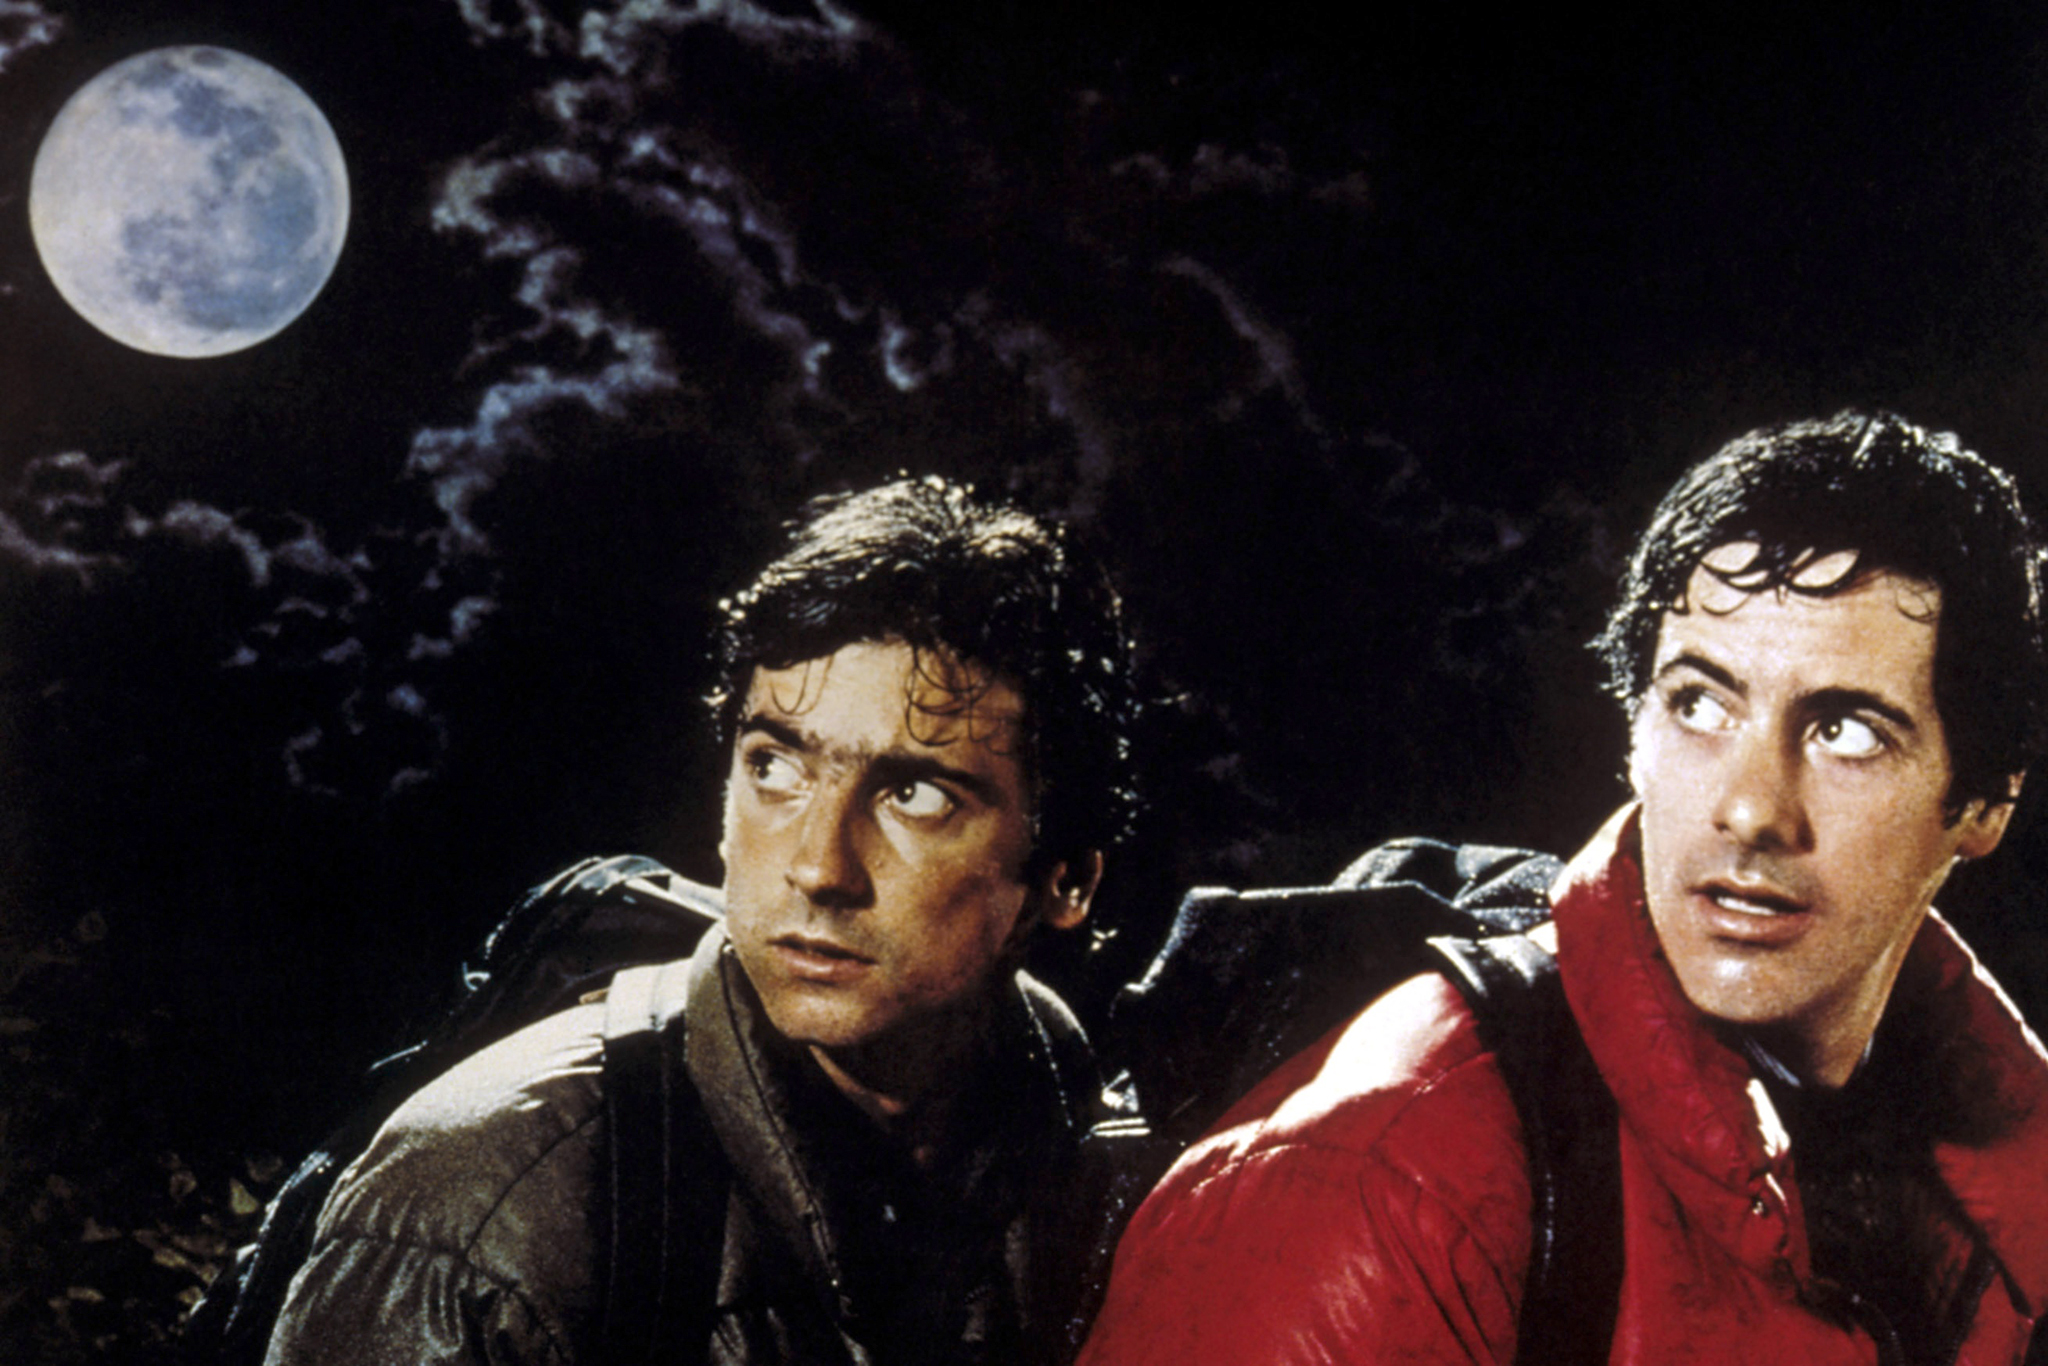 Griffin Dunne and David Naughton in 'An American Werewolf In London' (Photo: REX USA)